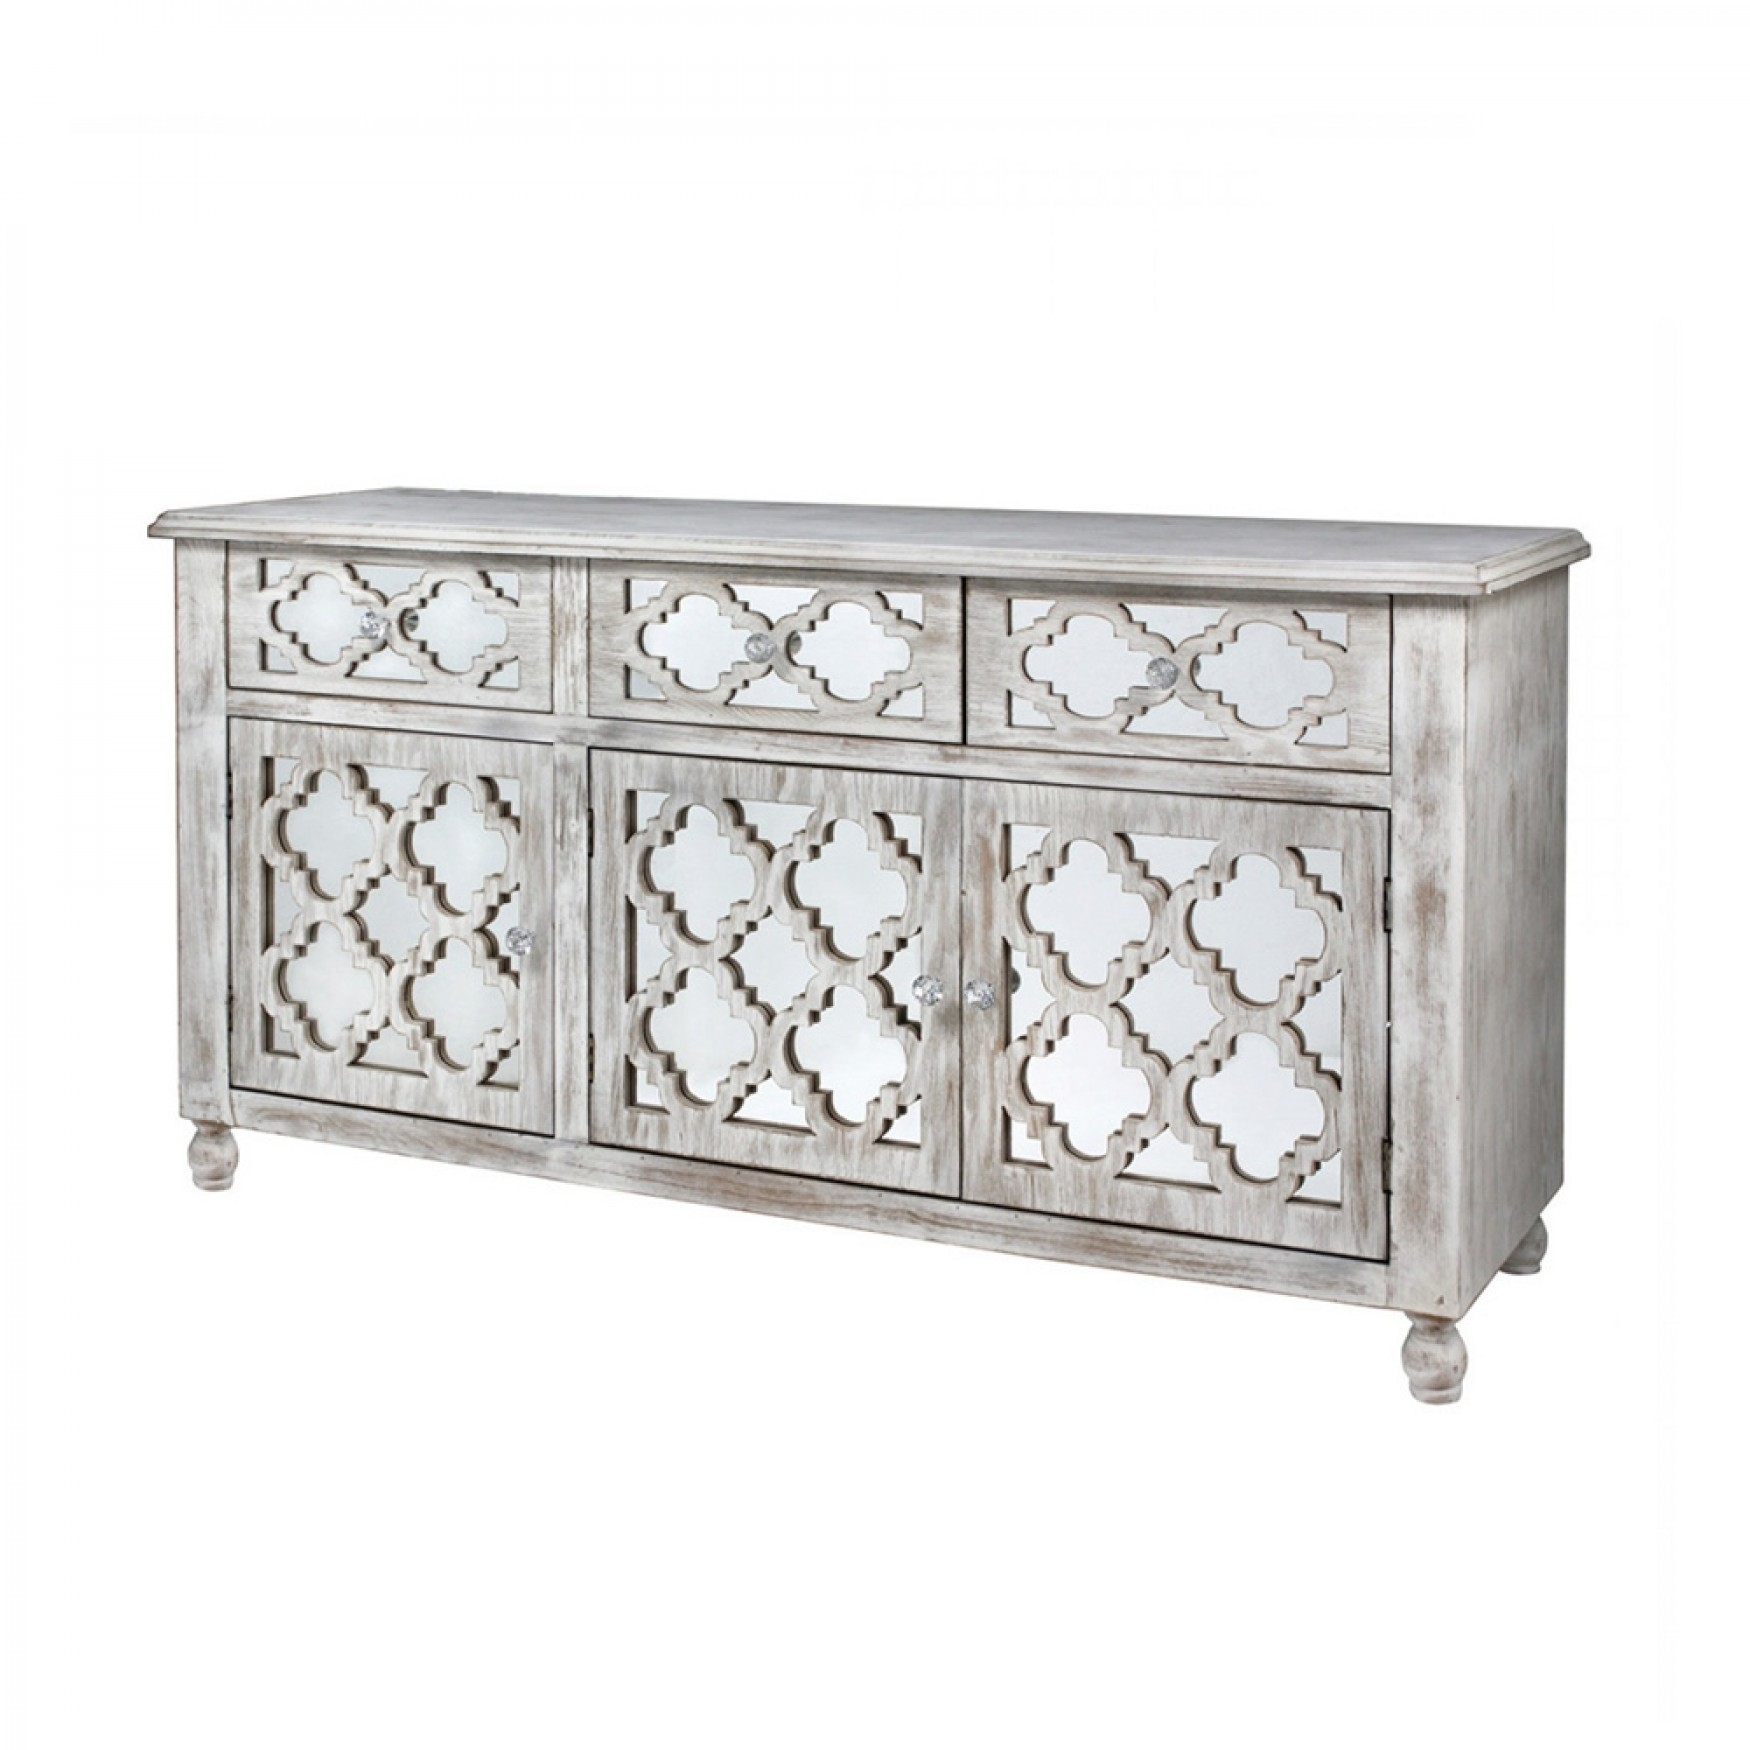 Hampton Beach 3 Door 3 Drawer Cabinet Washed Ash And Mirror Pertaining To Latest 4 Door 3 Drawer White Wash Sideboards (#7 of 20)